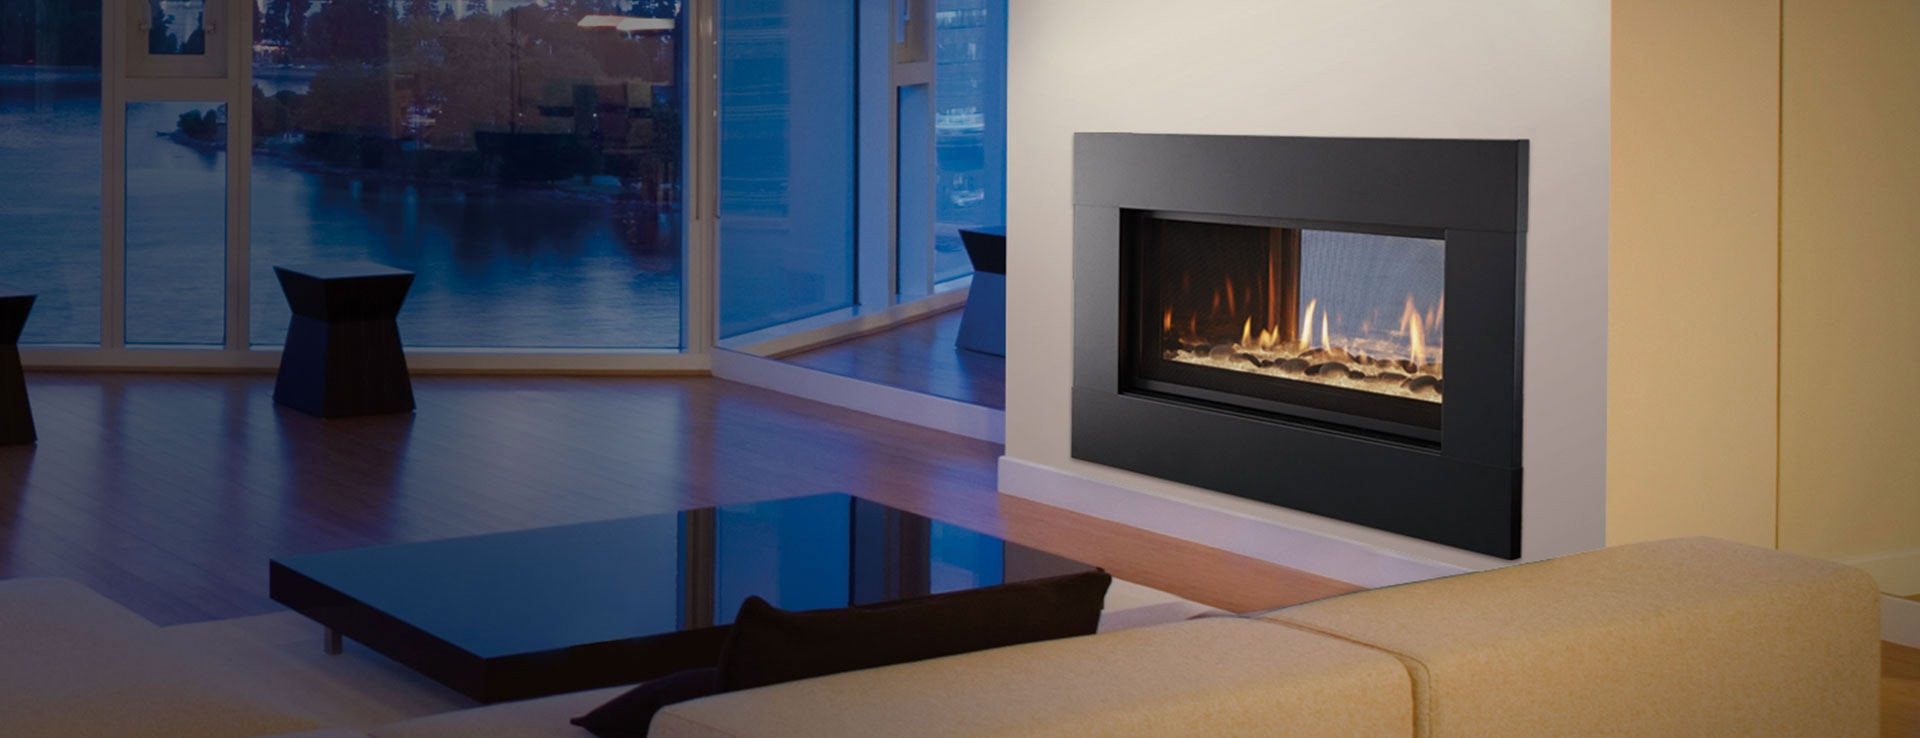 mezzanine see through gas fireplace heatilator